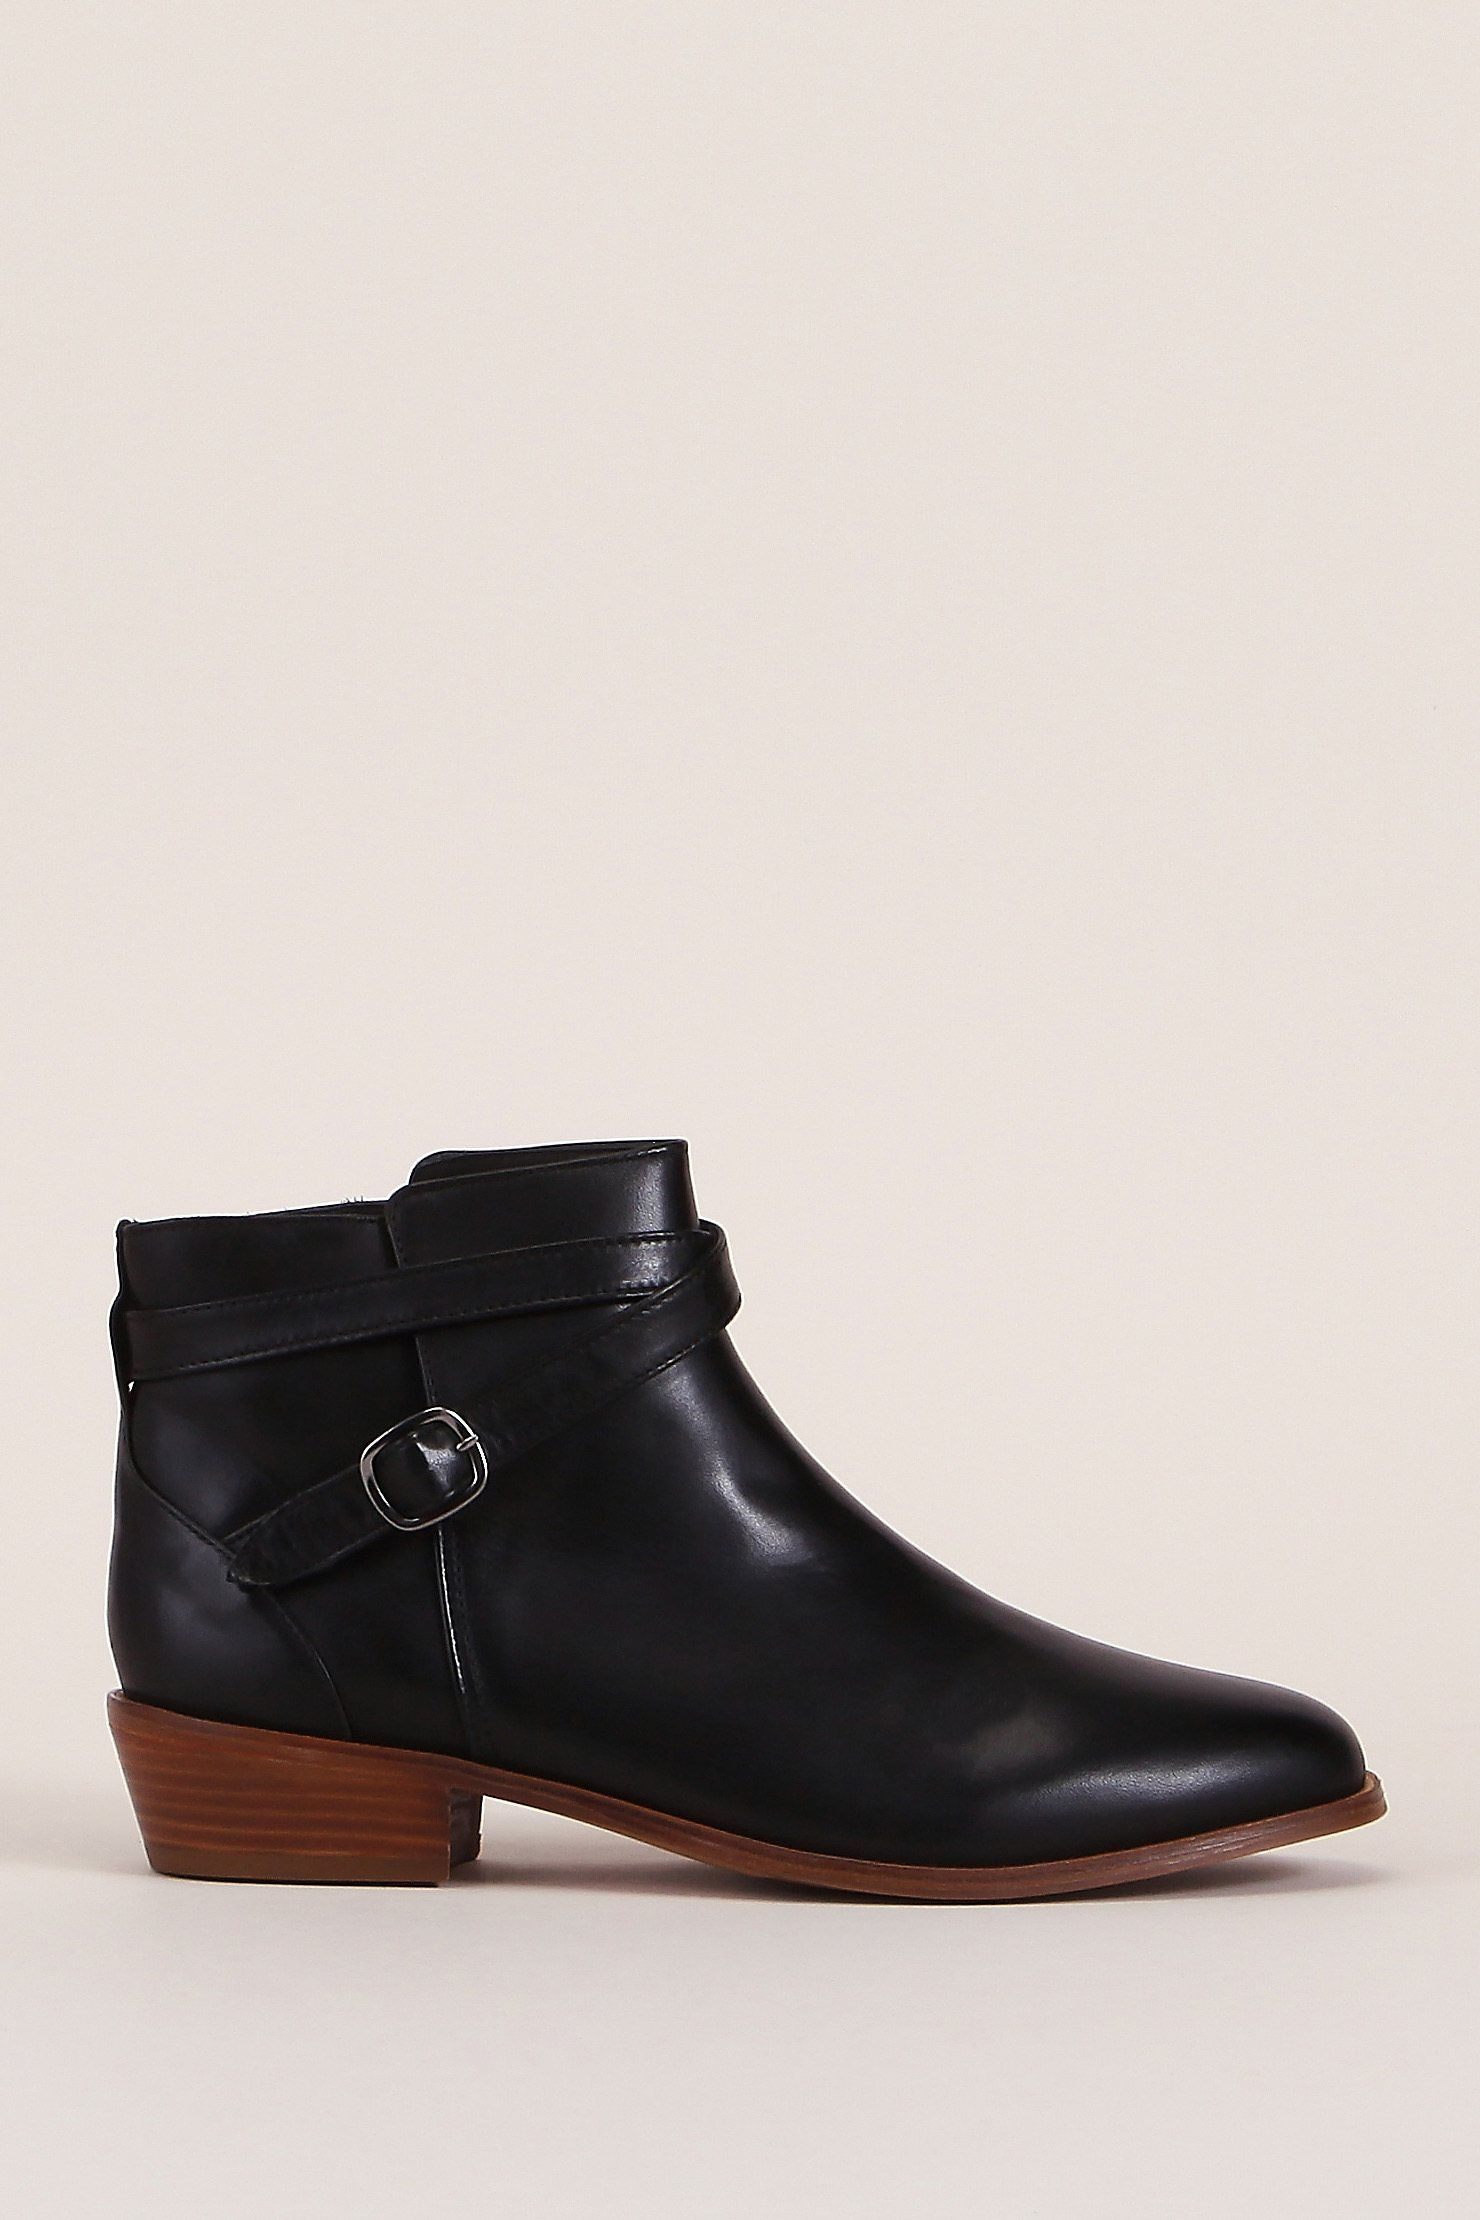 Bottines cuir noir l héroine zoom   Shoes   Pinterest   Bottines ... 868f5dc46793